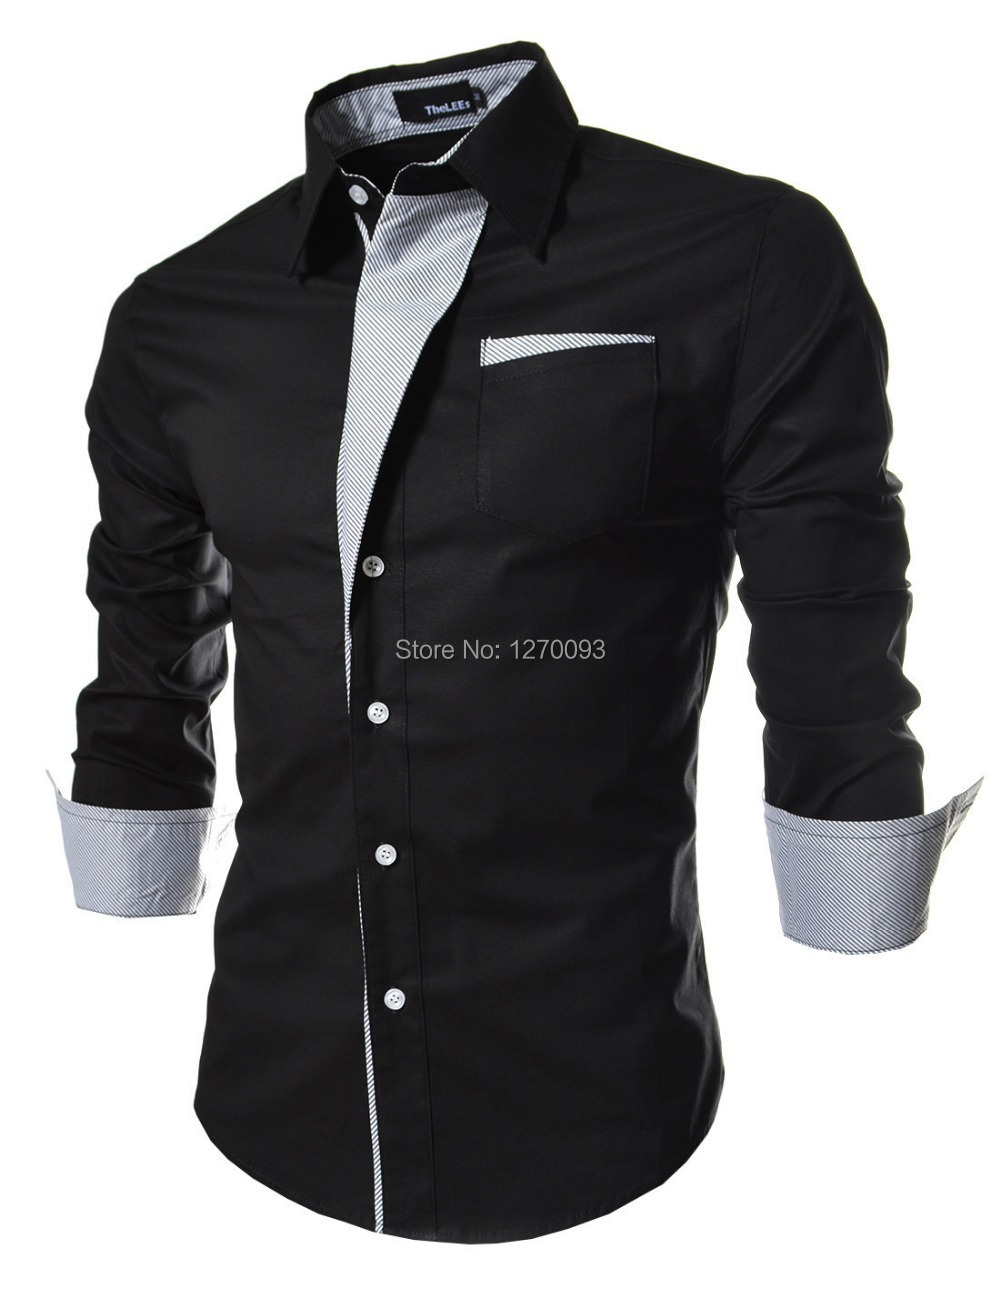 Shirt design for man 2016 - Aliexpress Com Buy 2016 New Fashion Men Shirt Long Sleeve High Quality Slim Fit Design Shirt Men Solid Color Formal Casual Shirts Camisa Masculina From